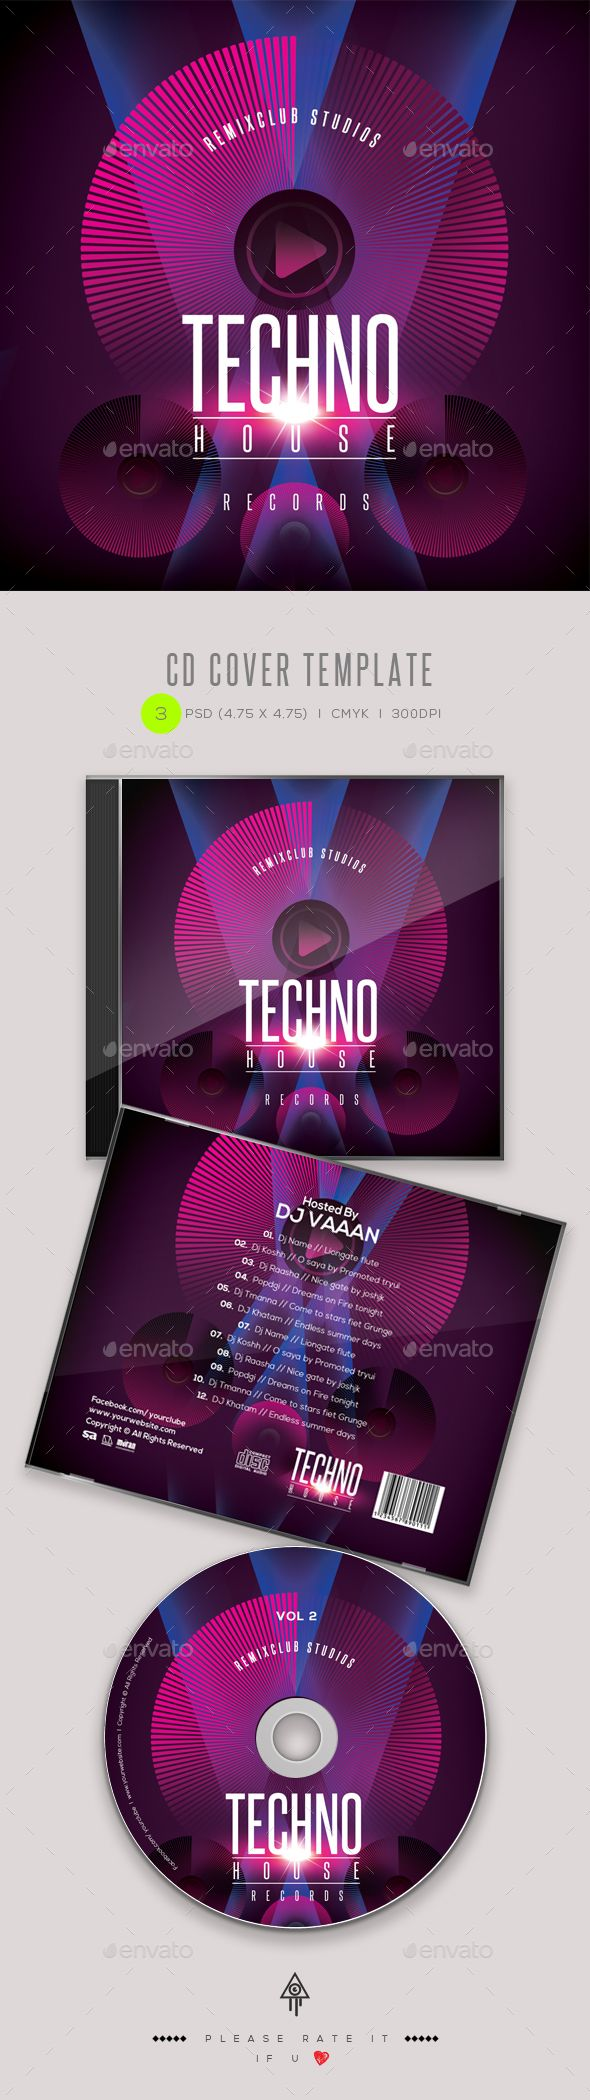 Techno House CD Cover Artwork Template PSD. Download here: https://graphicriver.net/item/techno-house-cd-cover-artwork/17474637?ref=ksioks